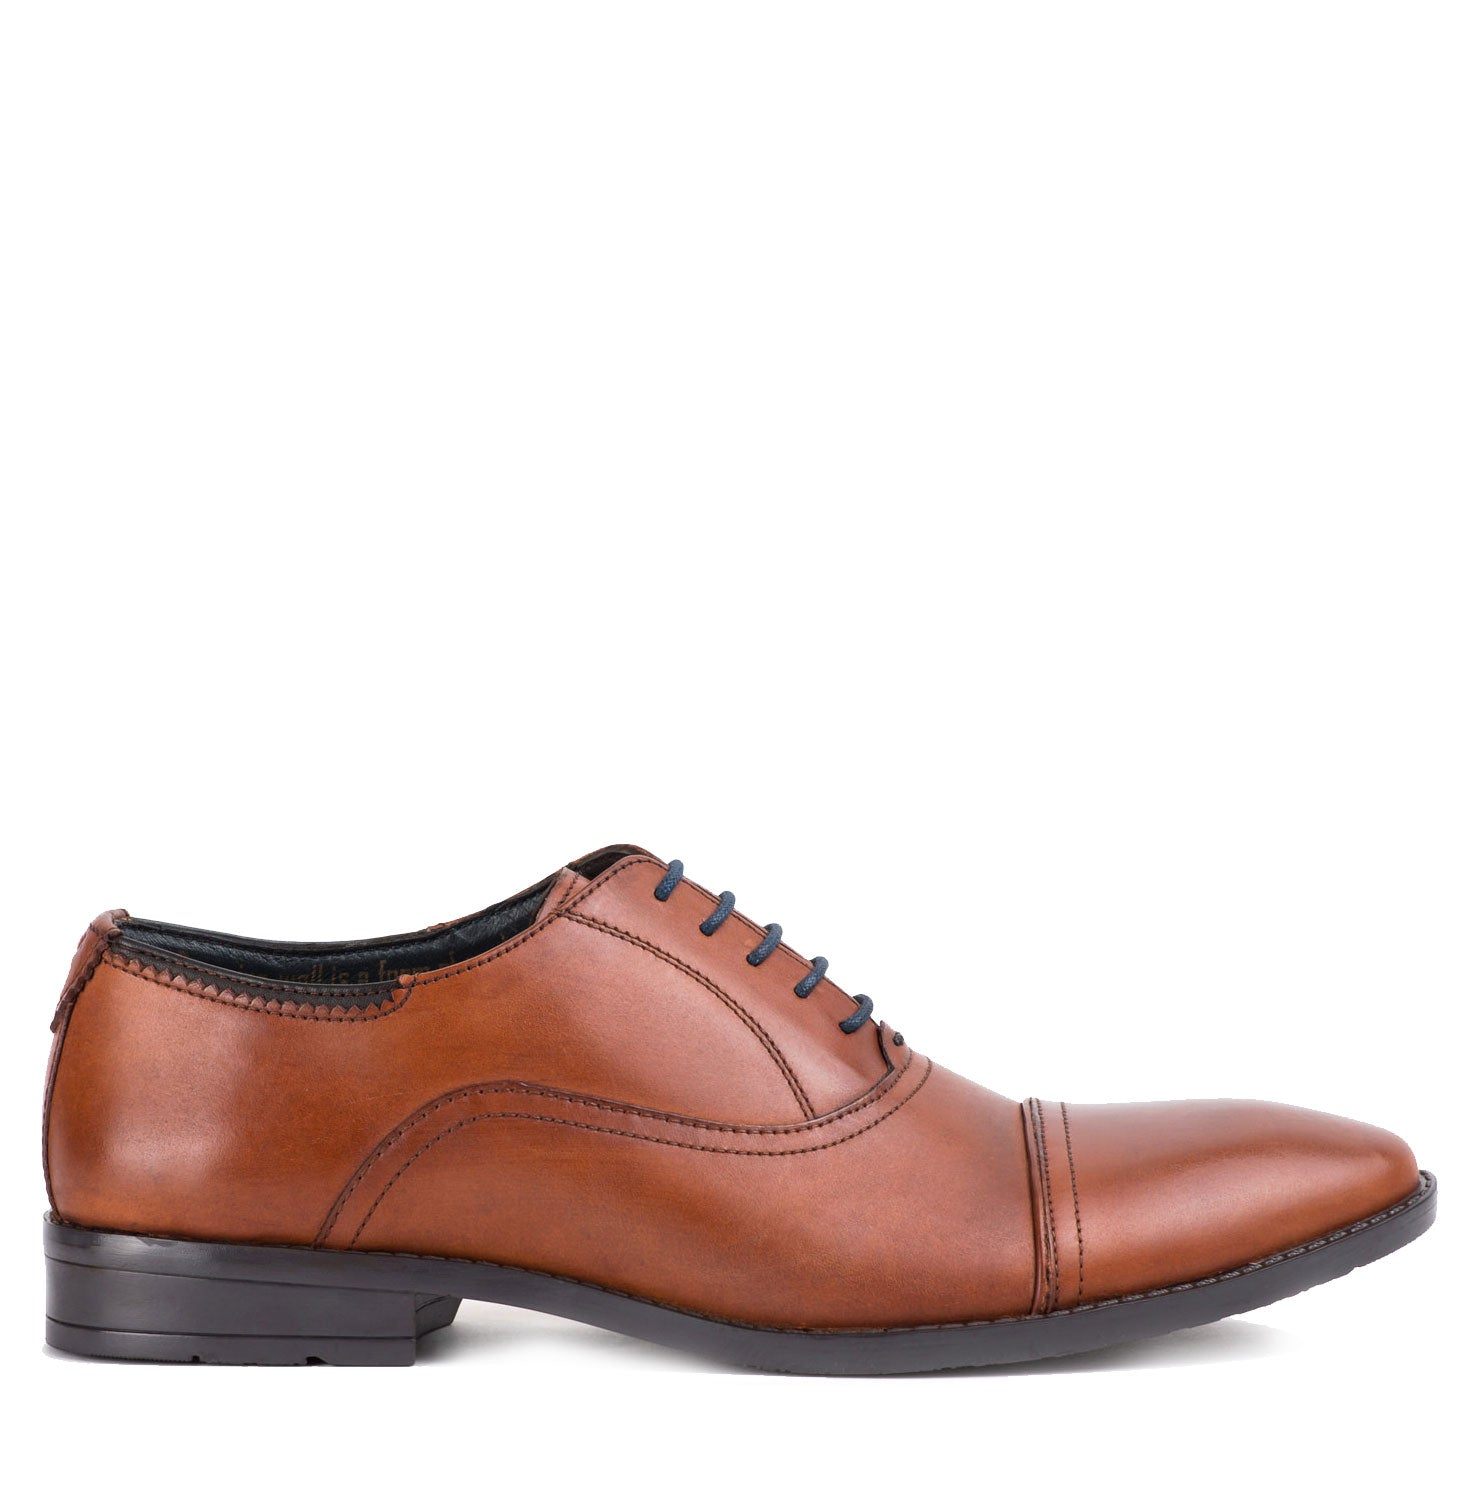 Westminster Rich Tan Leather Oxford Shoe by Goodwin Smith